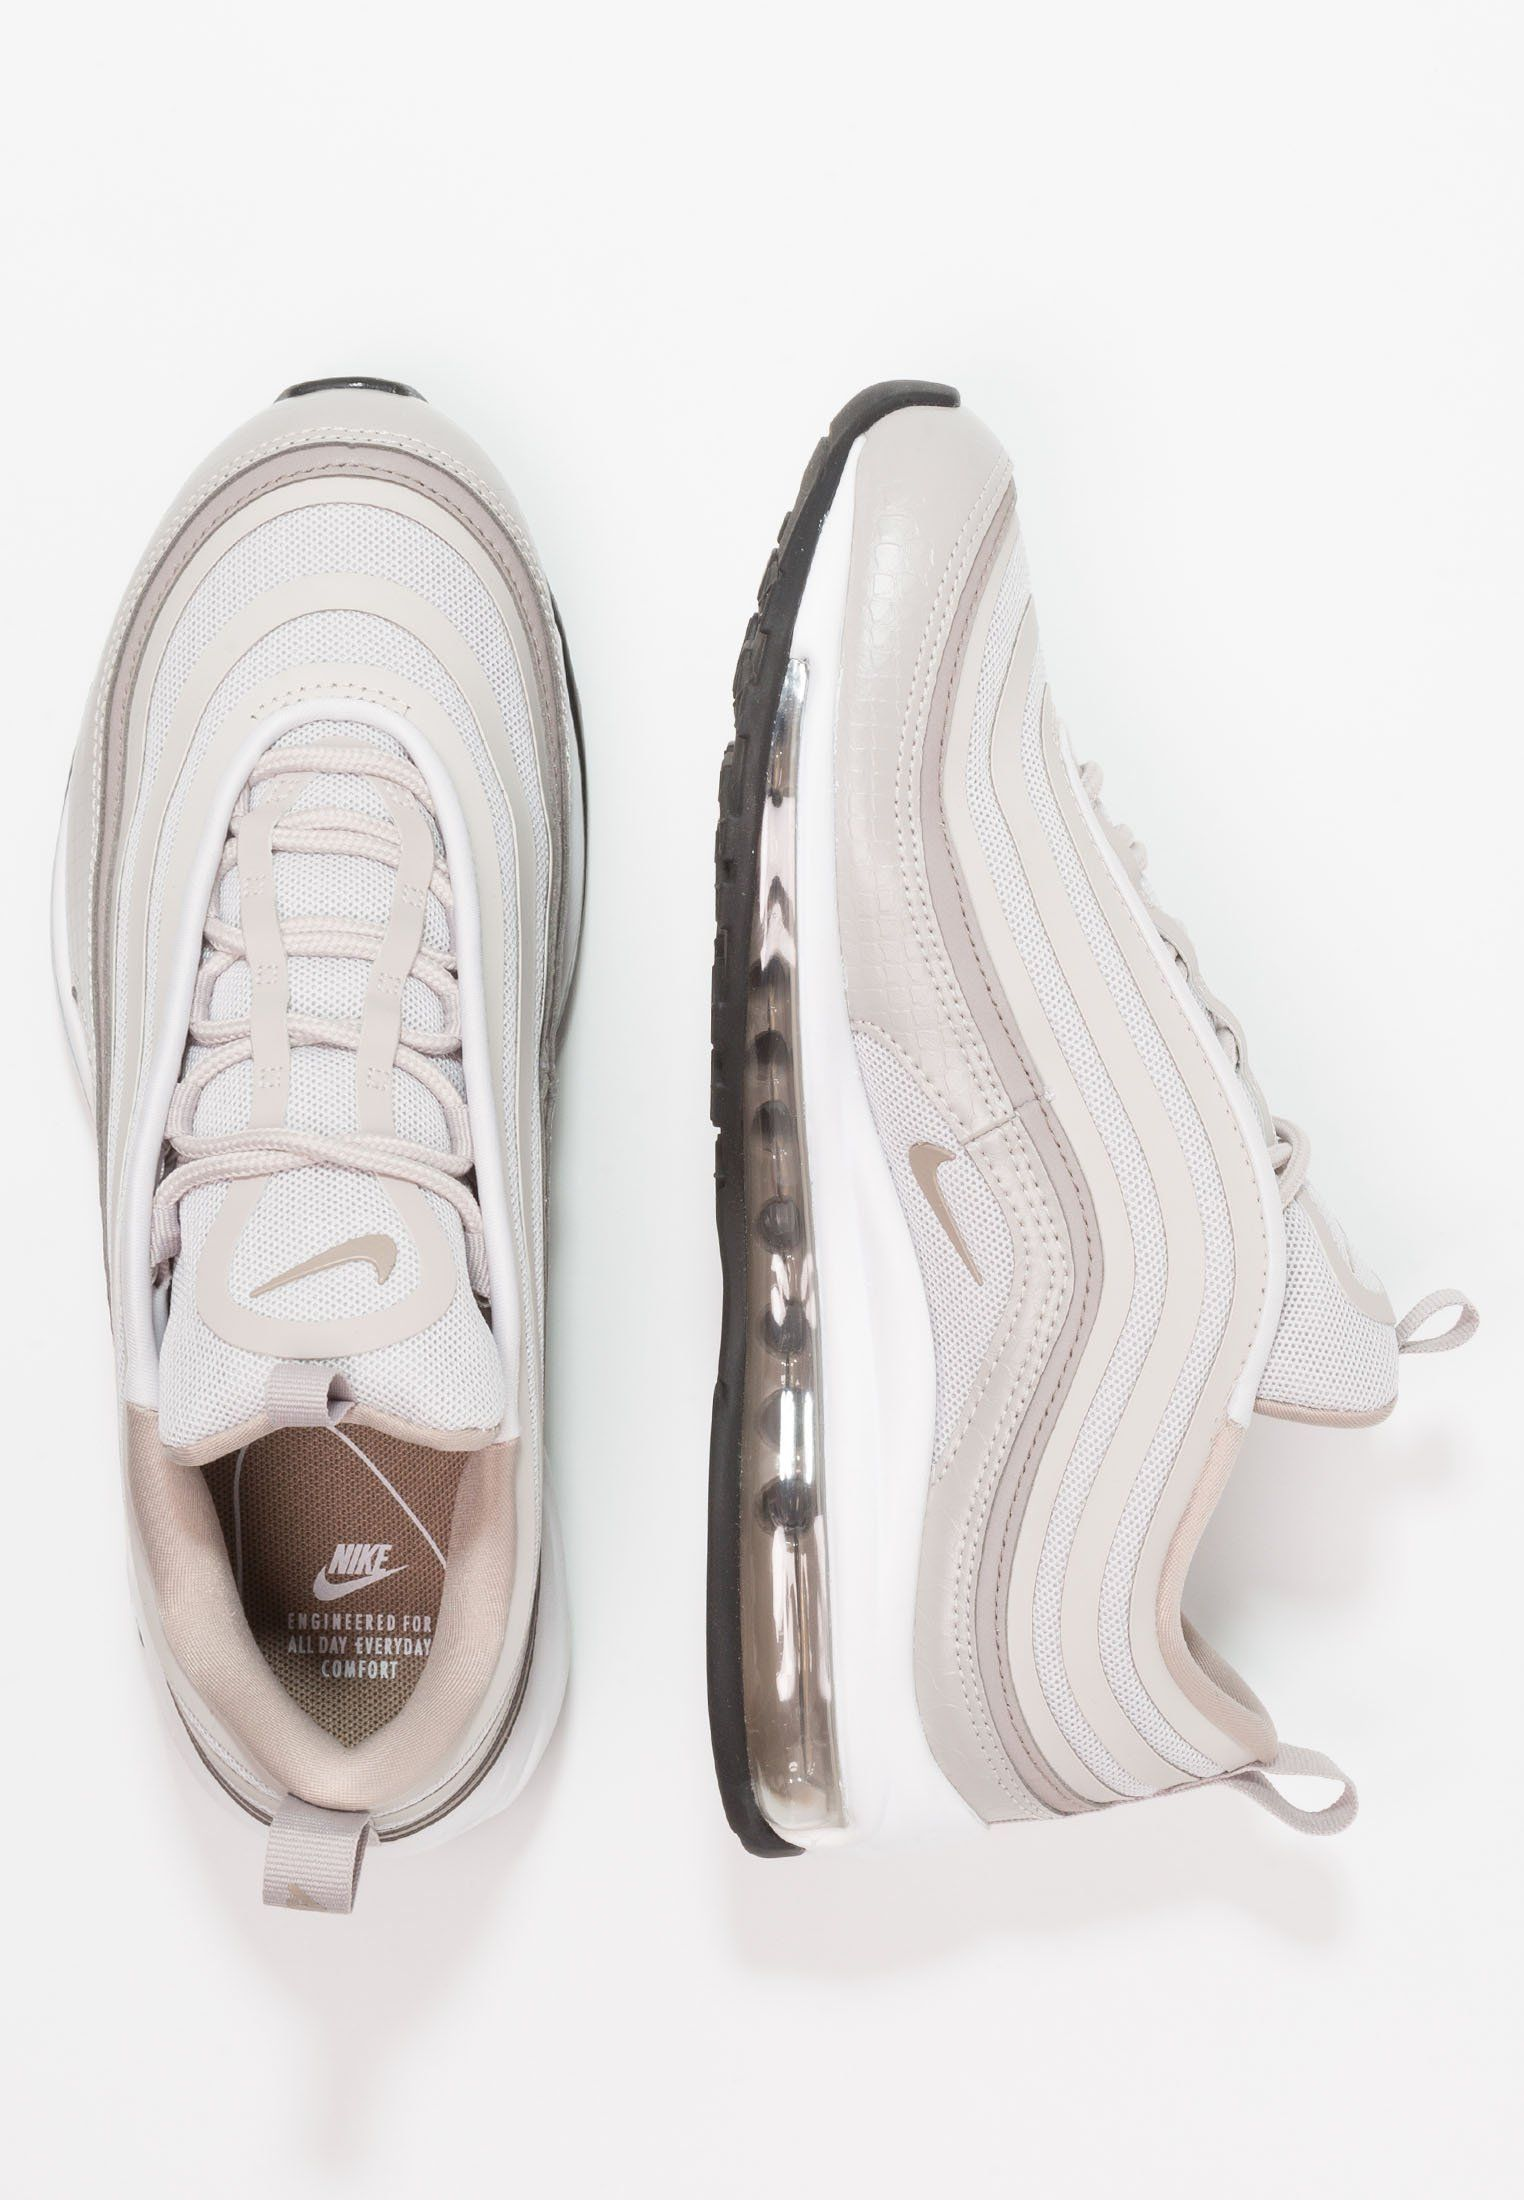 AIR MAX 97 UL 17 Sneaker low moon particlesepia stone